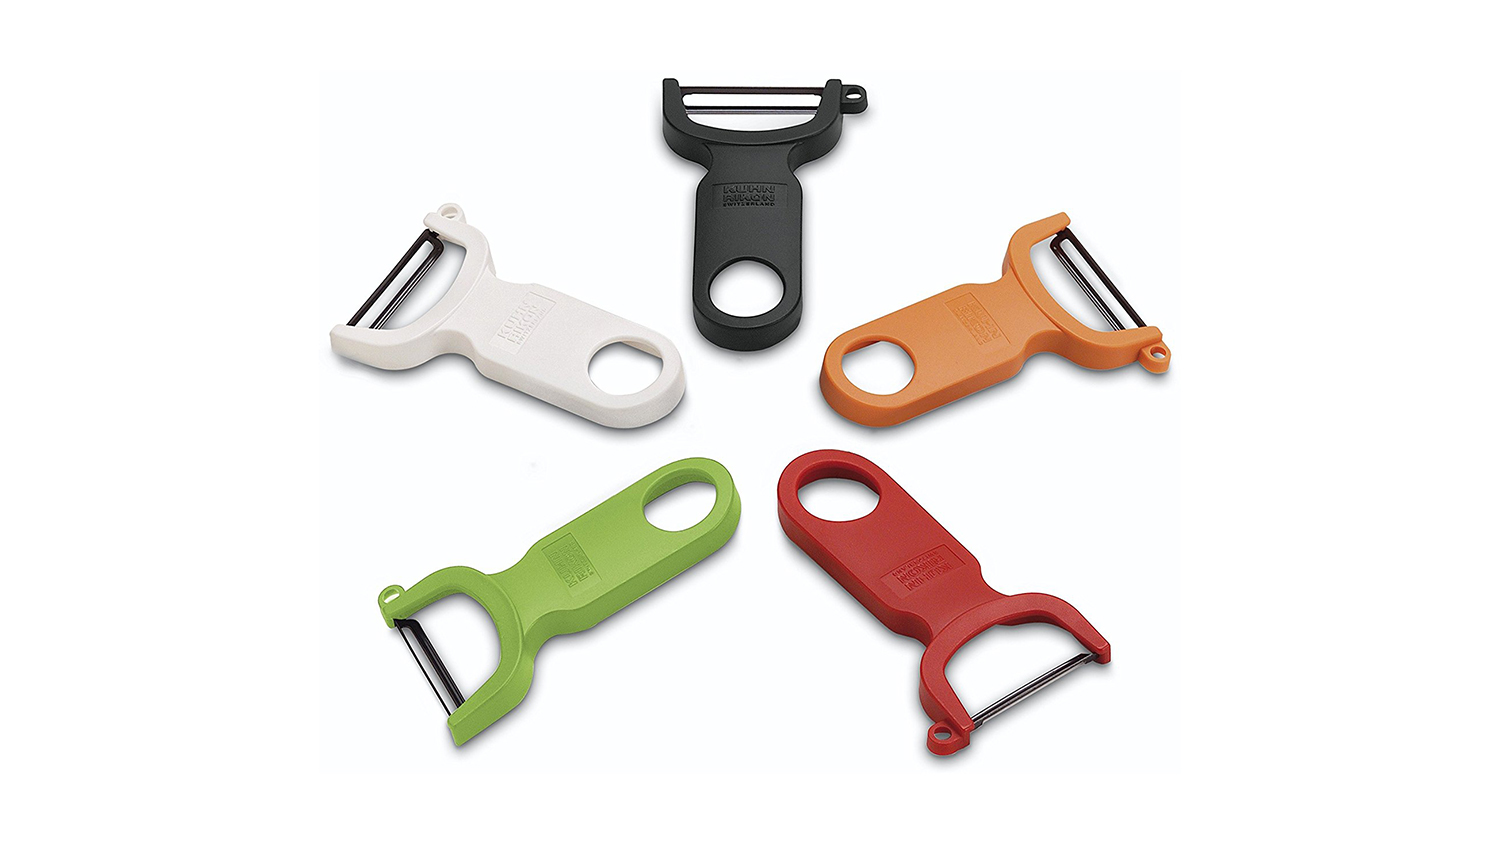 Kuhn Rikon Vegetable Peeler